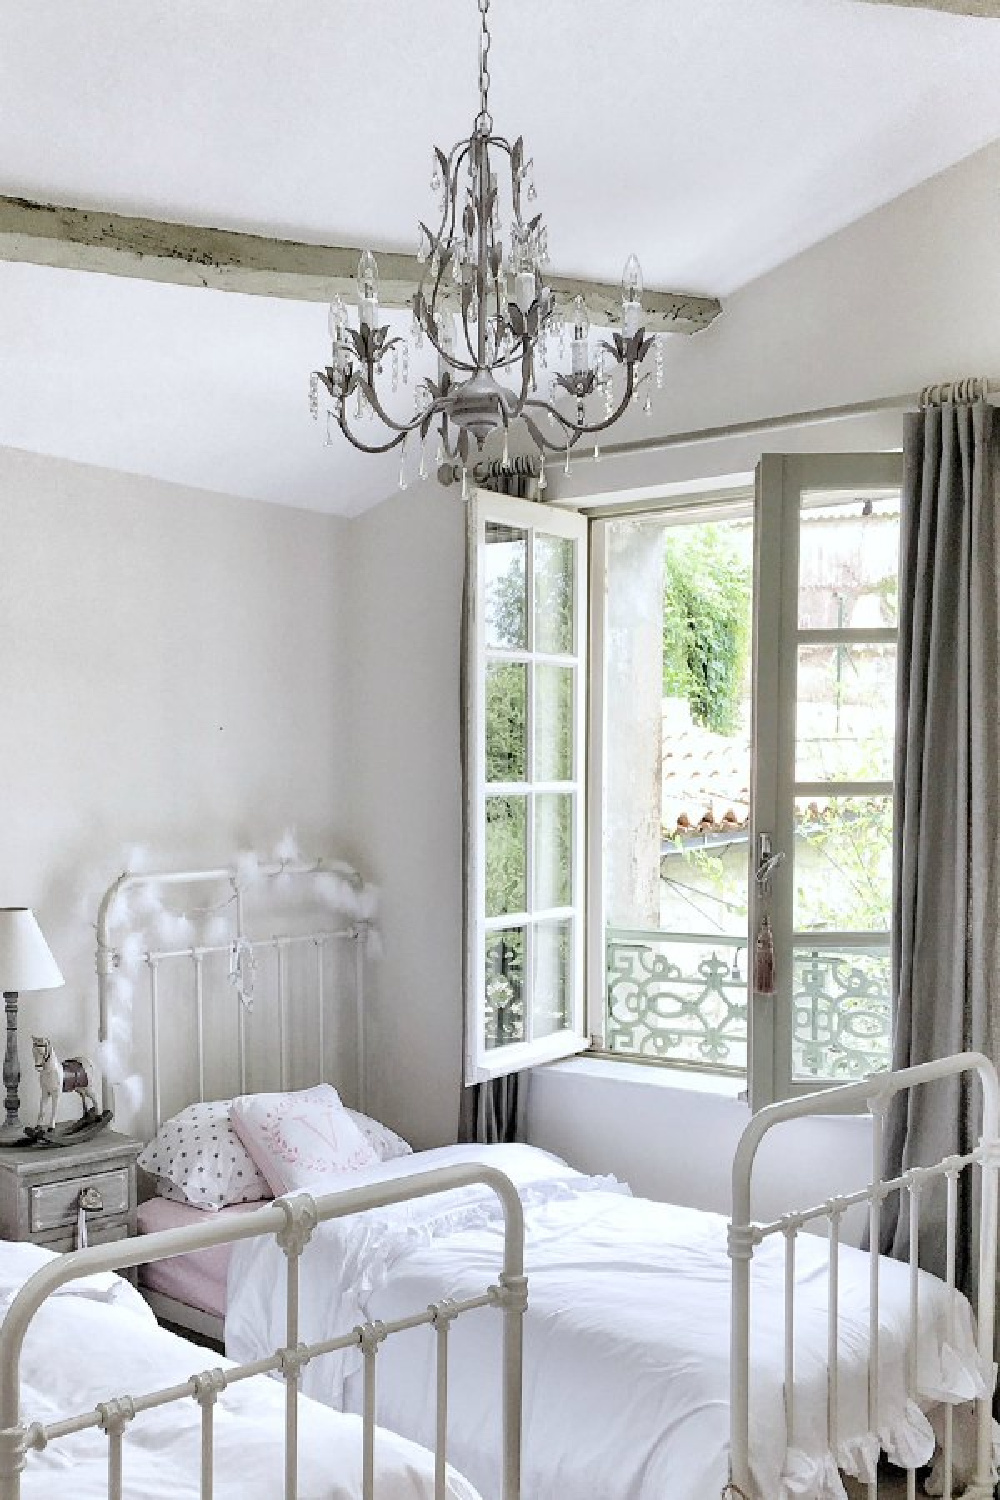 Girls bedroom in French countryside with chandelier and metal vintage beds. You'll love this photo gallery and house tour of a home near Bordeaux, France. #vivietmargot #frenchfarmhouse #rusticdecor #countryfrench #interiordesign #bedroomdecor